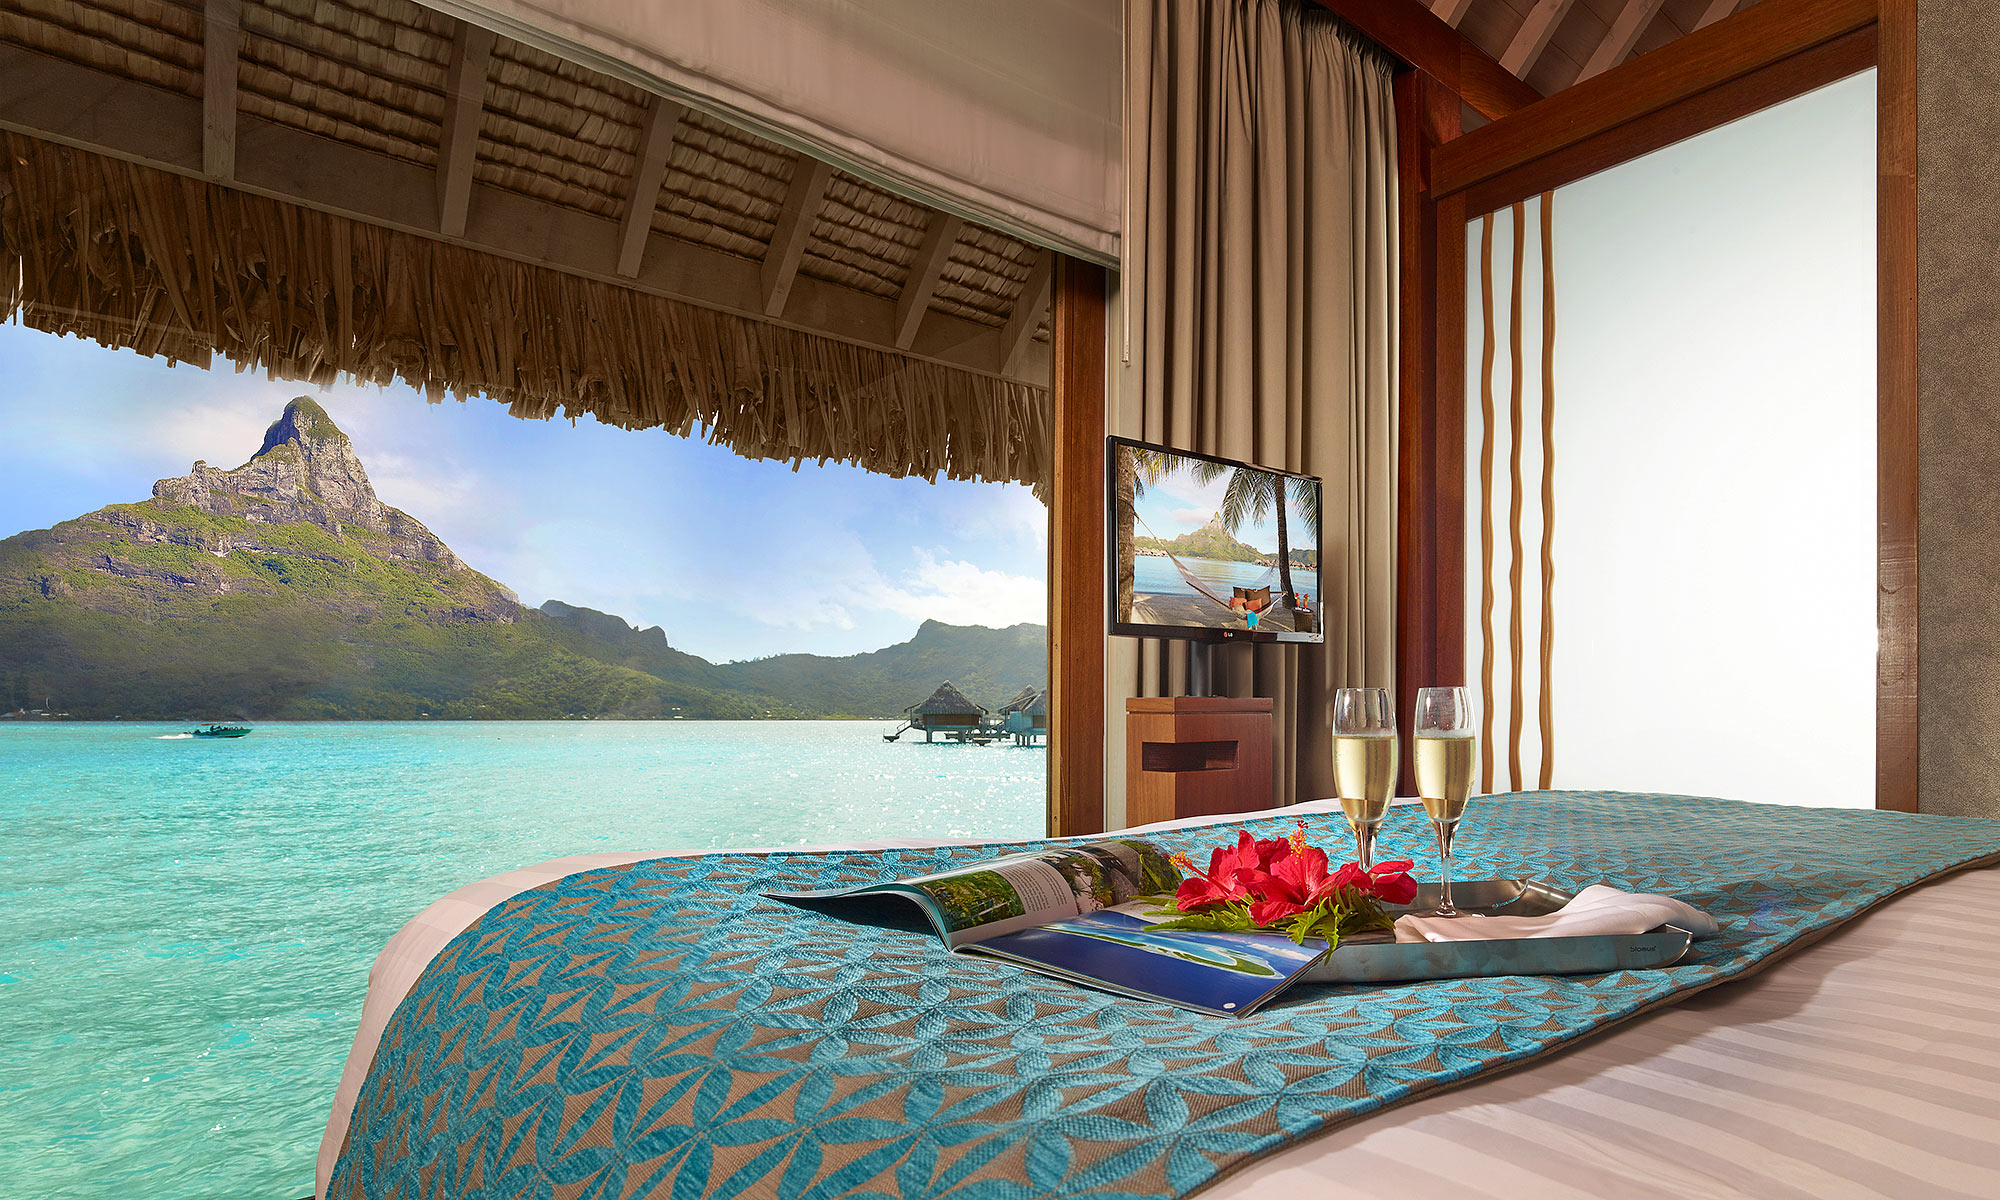 Luxury-Resort-Photography-Bora-Bora-Mountain-Bedroom-Breakfast